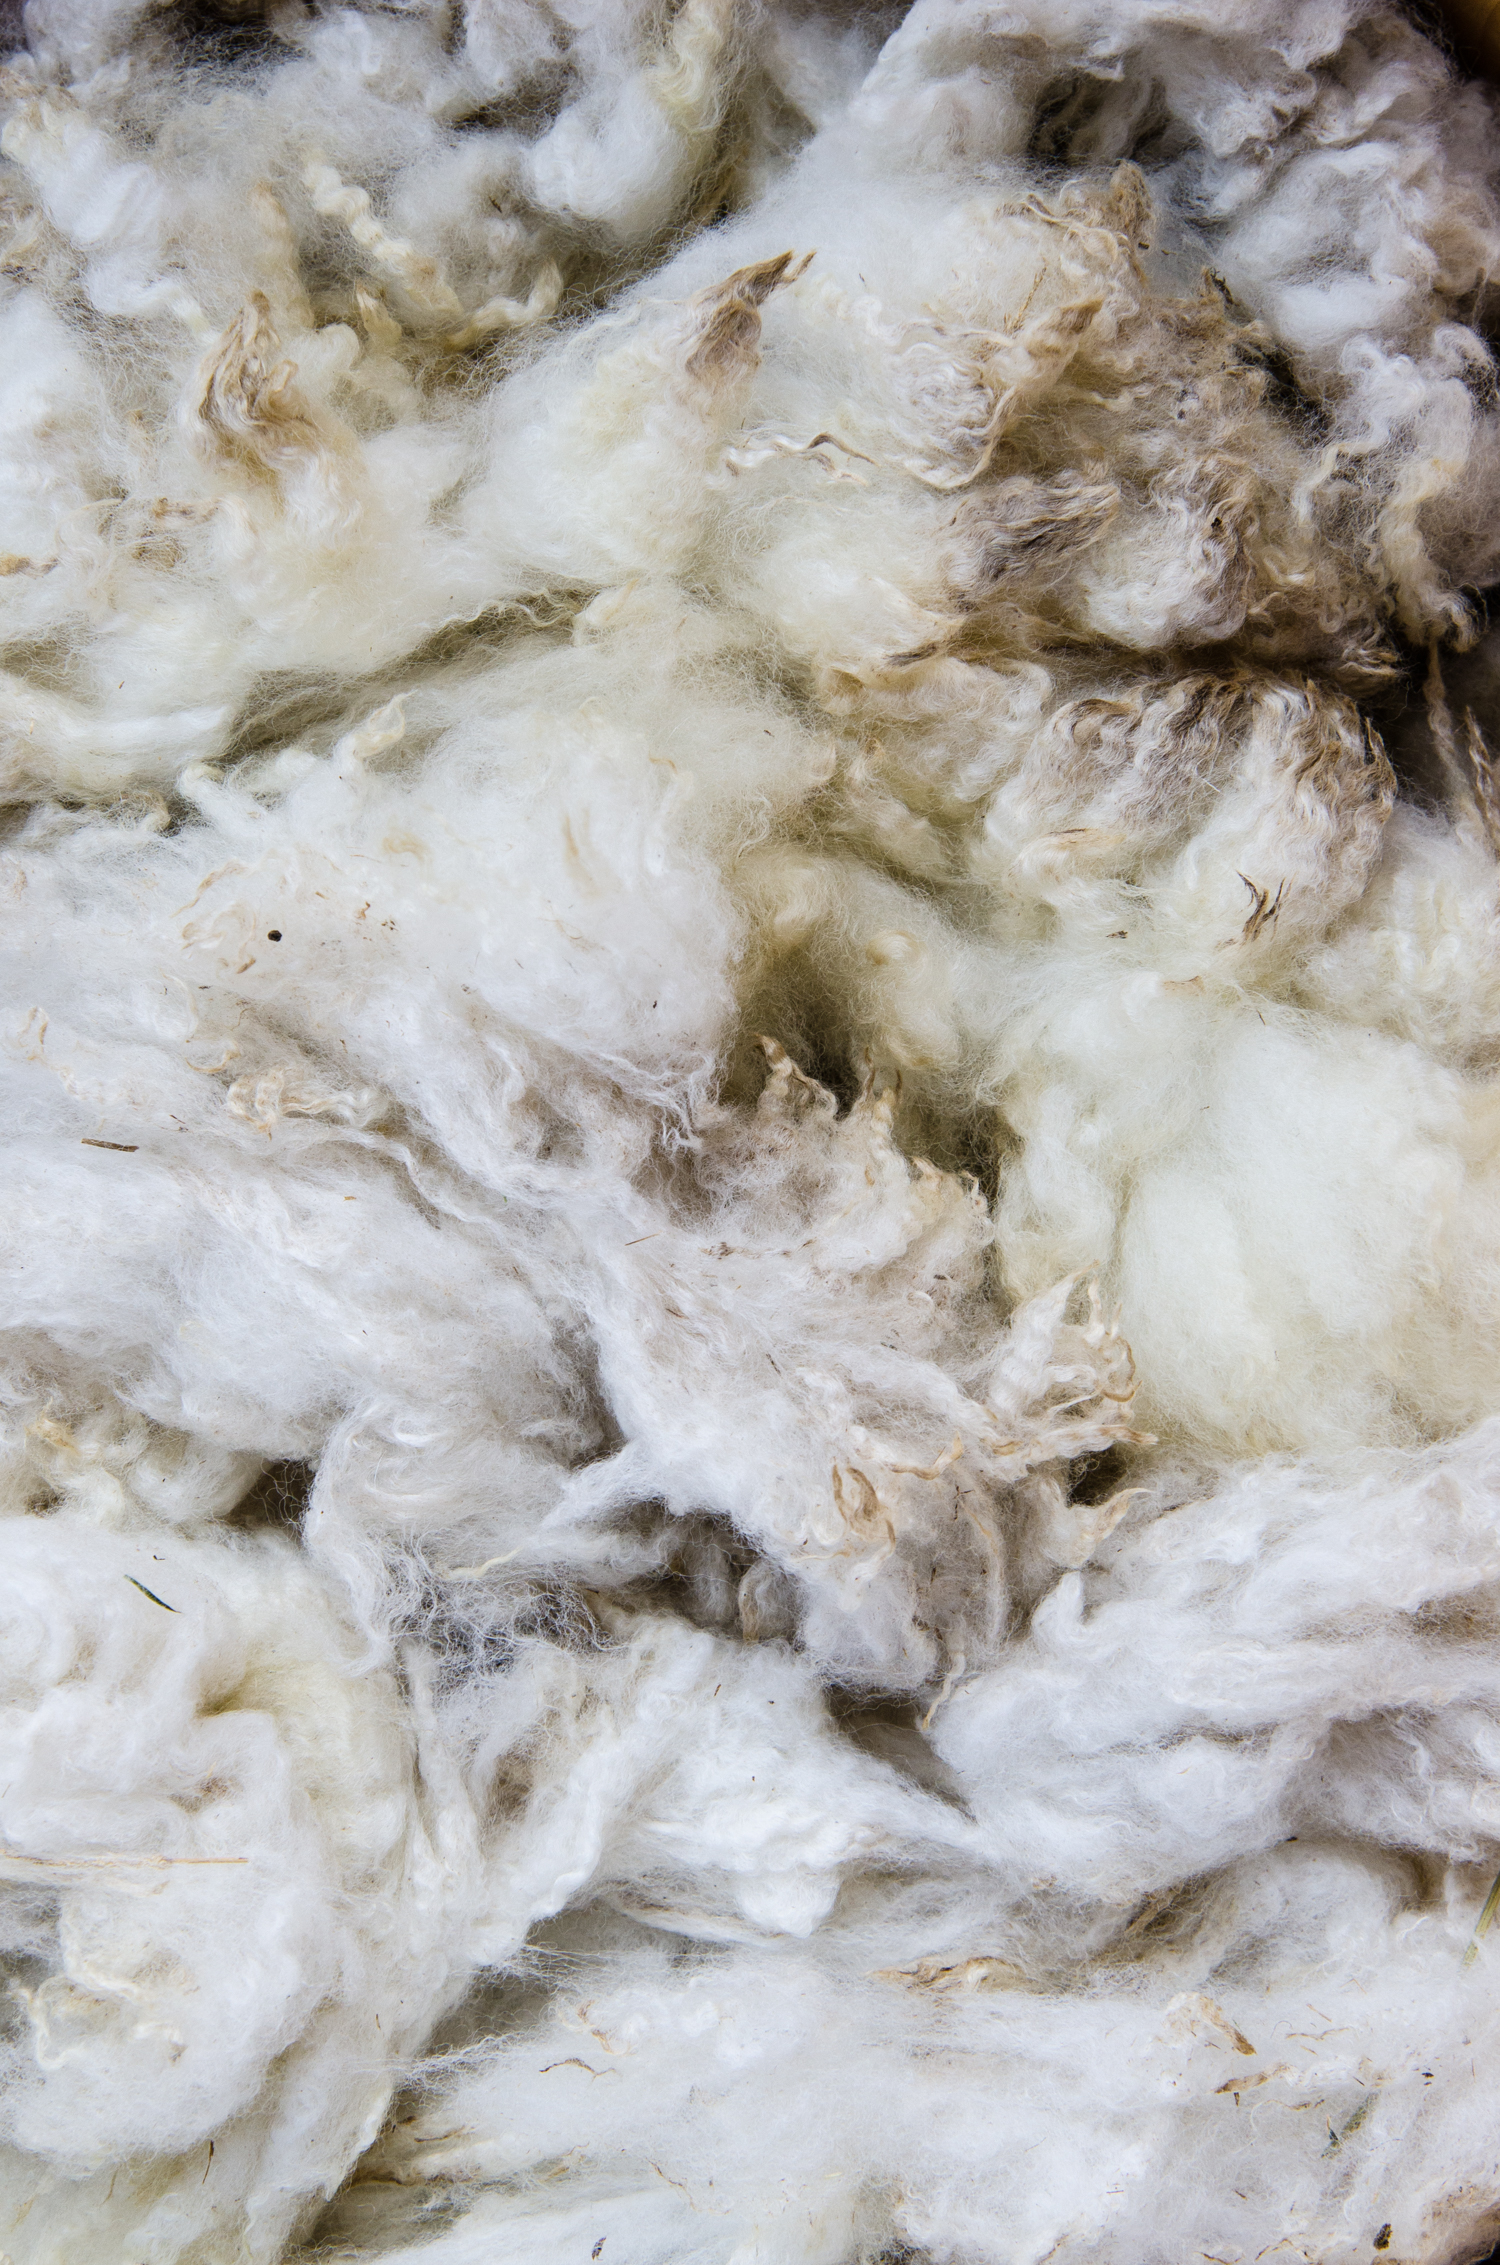 Raw fleece from recent shearing.